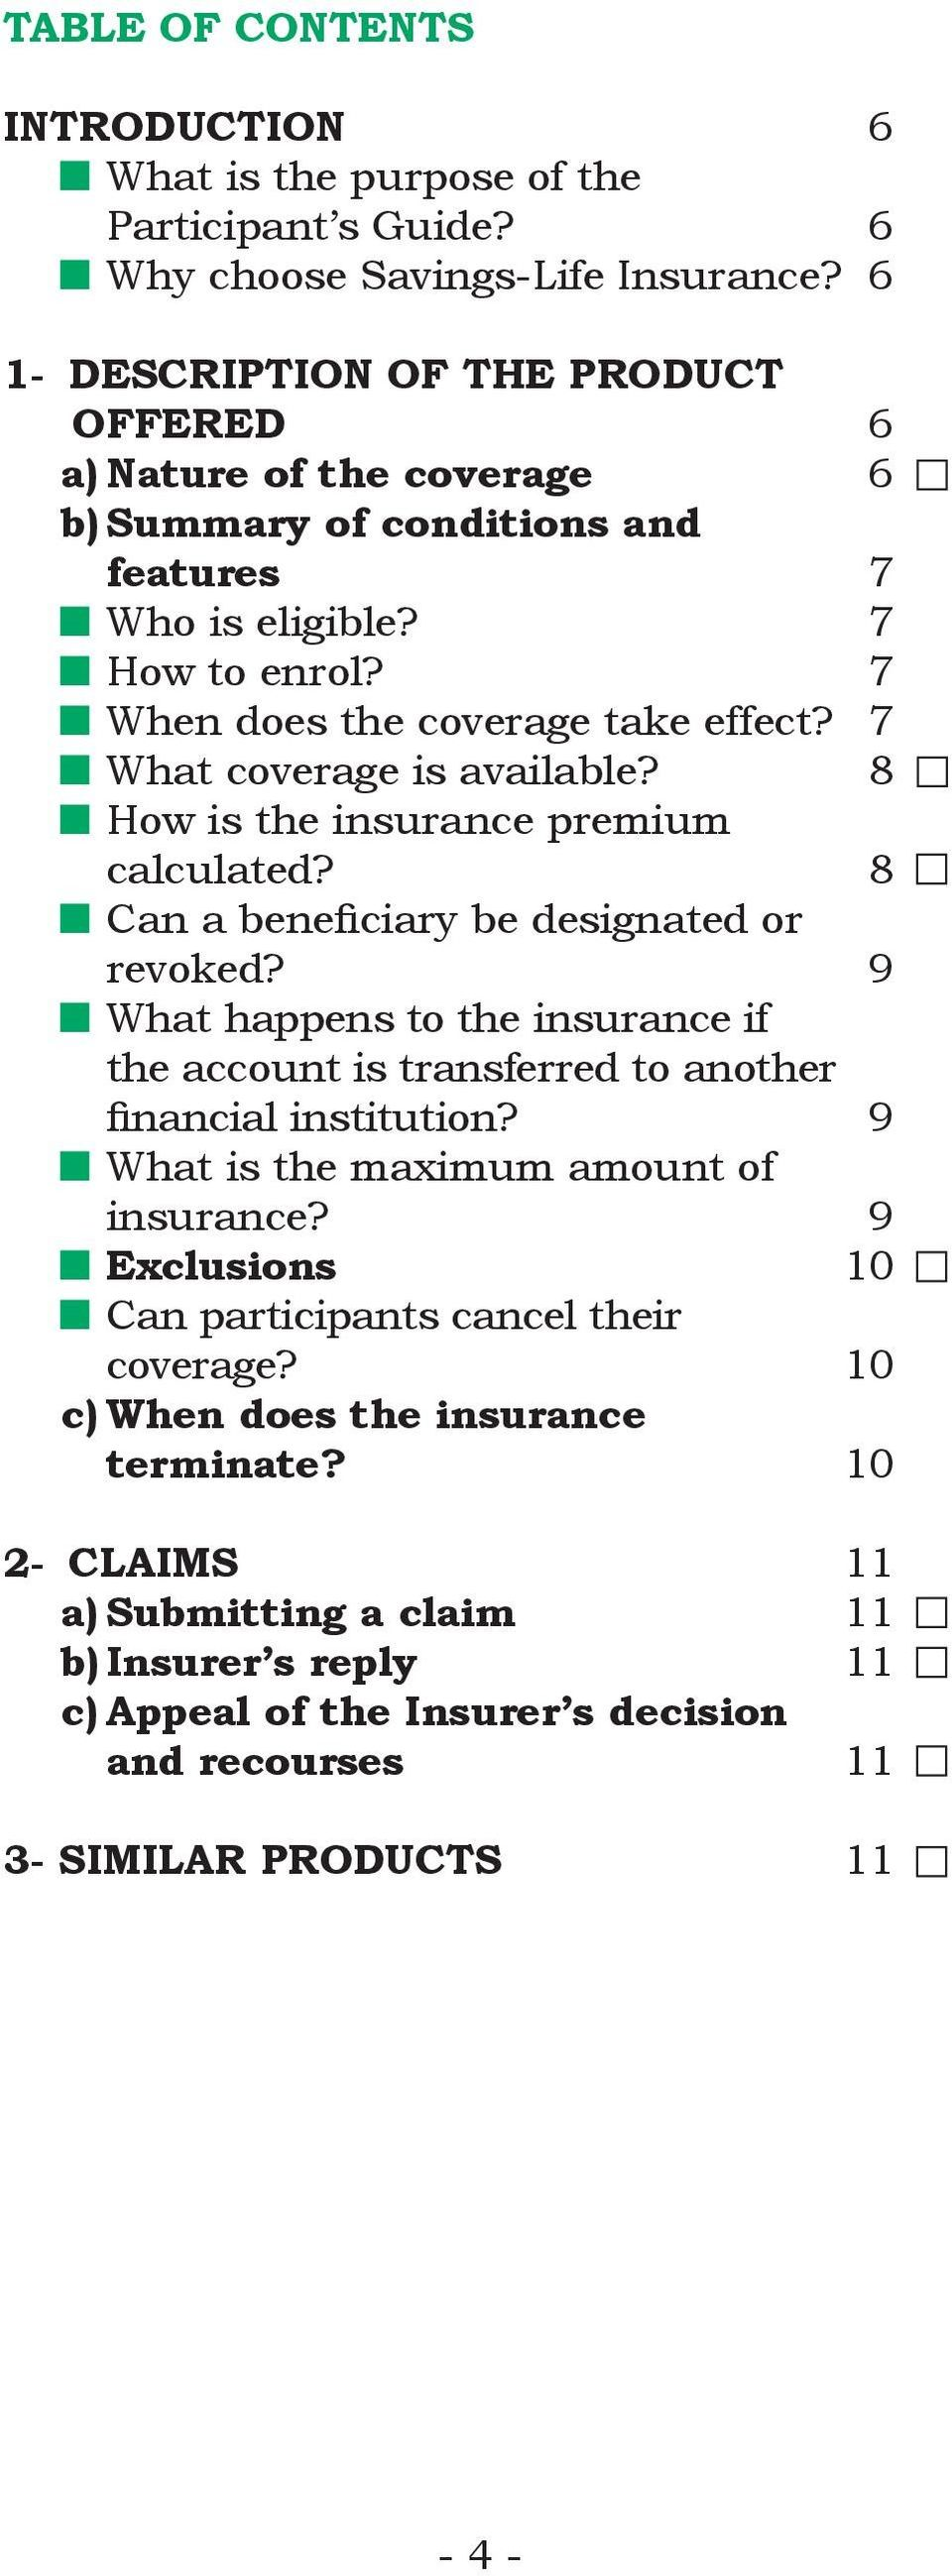 7 What coverage is available? 8 How is the insurance premium calculated? 8 Can a beneficiary be designated or revoked?